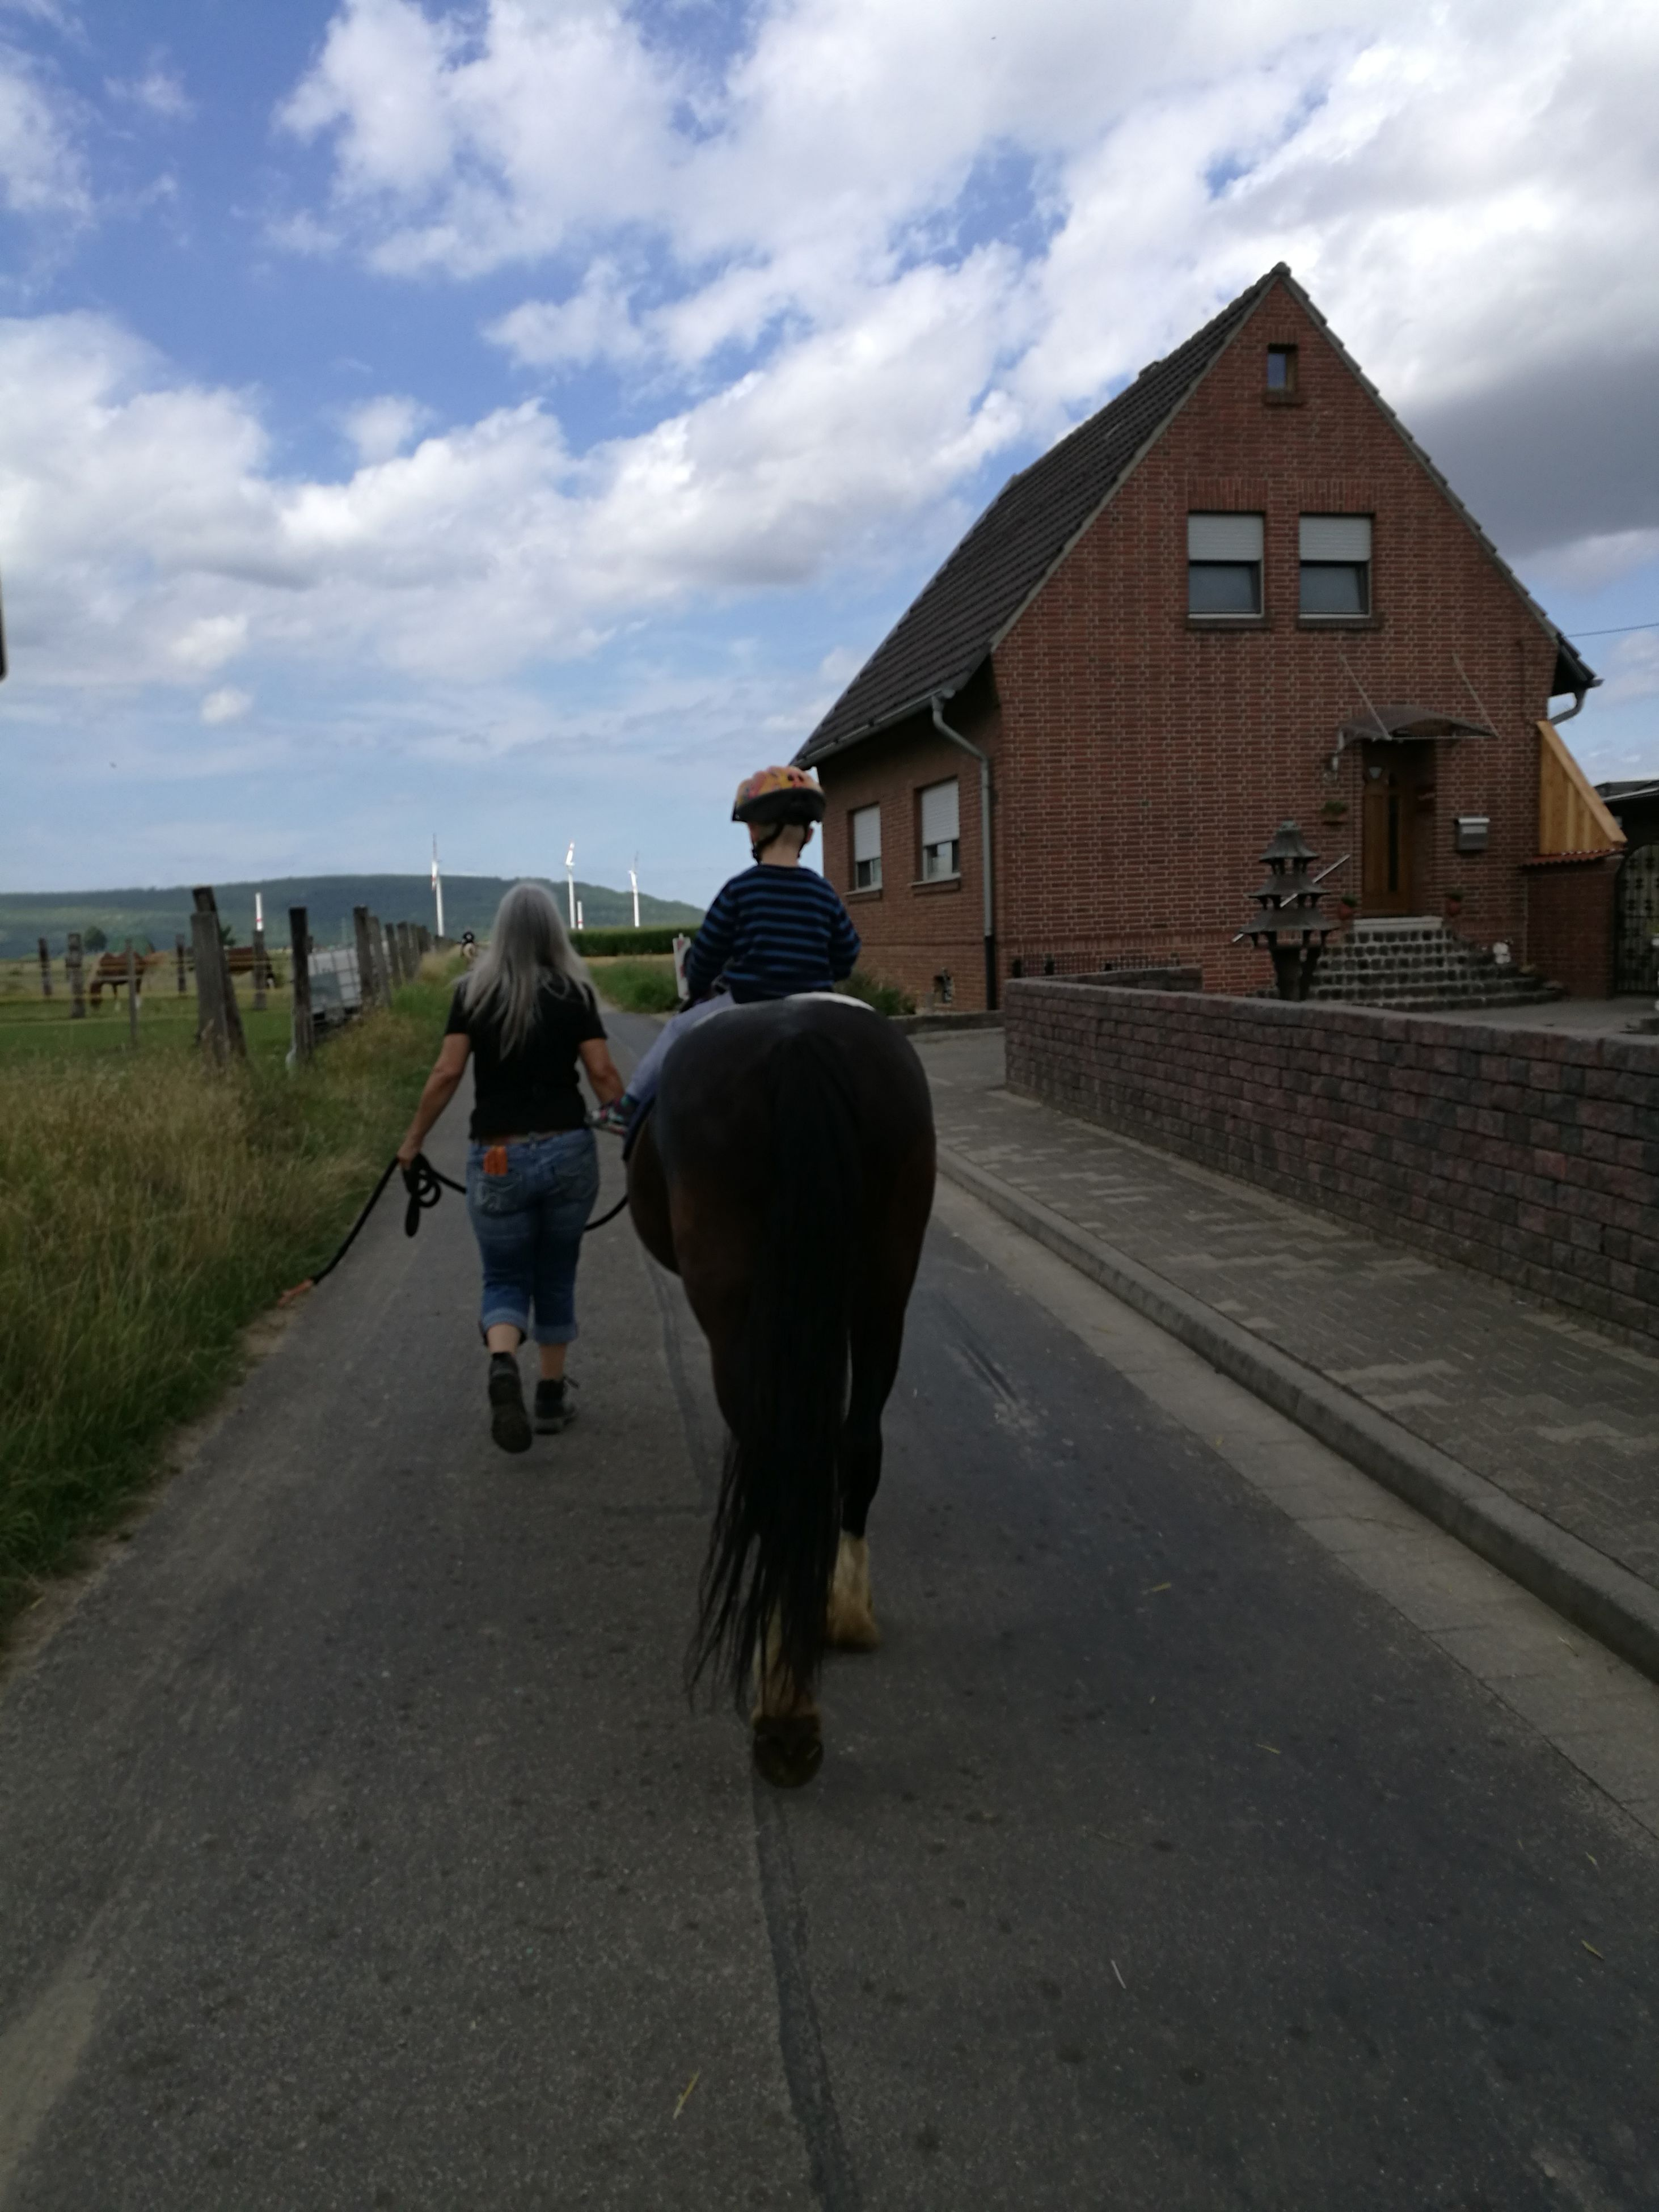 domestic animals, rear view, mammal, horse, one animal, cloud - sky, livestock, sky, real people, walking, built structure, full length, day, architecture, men, the way forward, transportation, building exterior, outdoors, lifestyles, road, one person, pets, nature, people